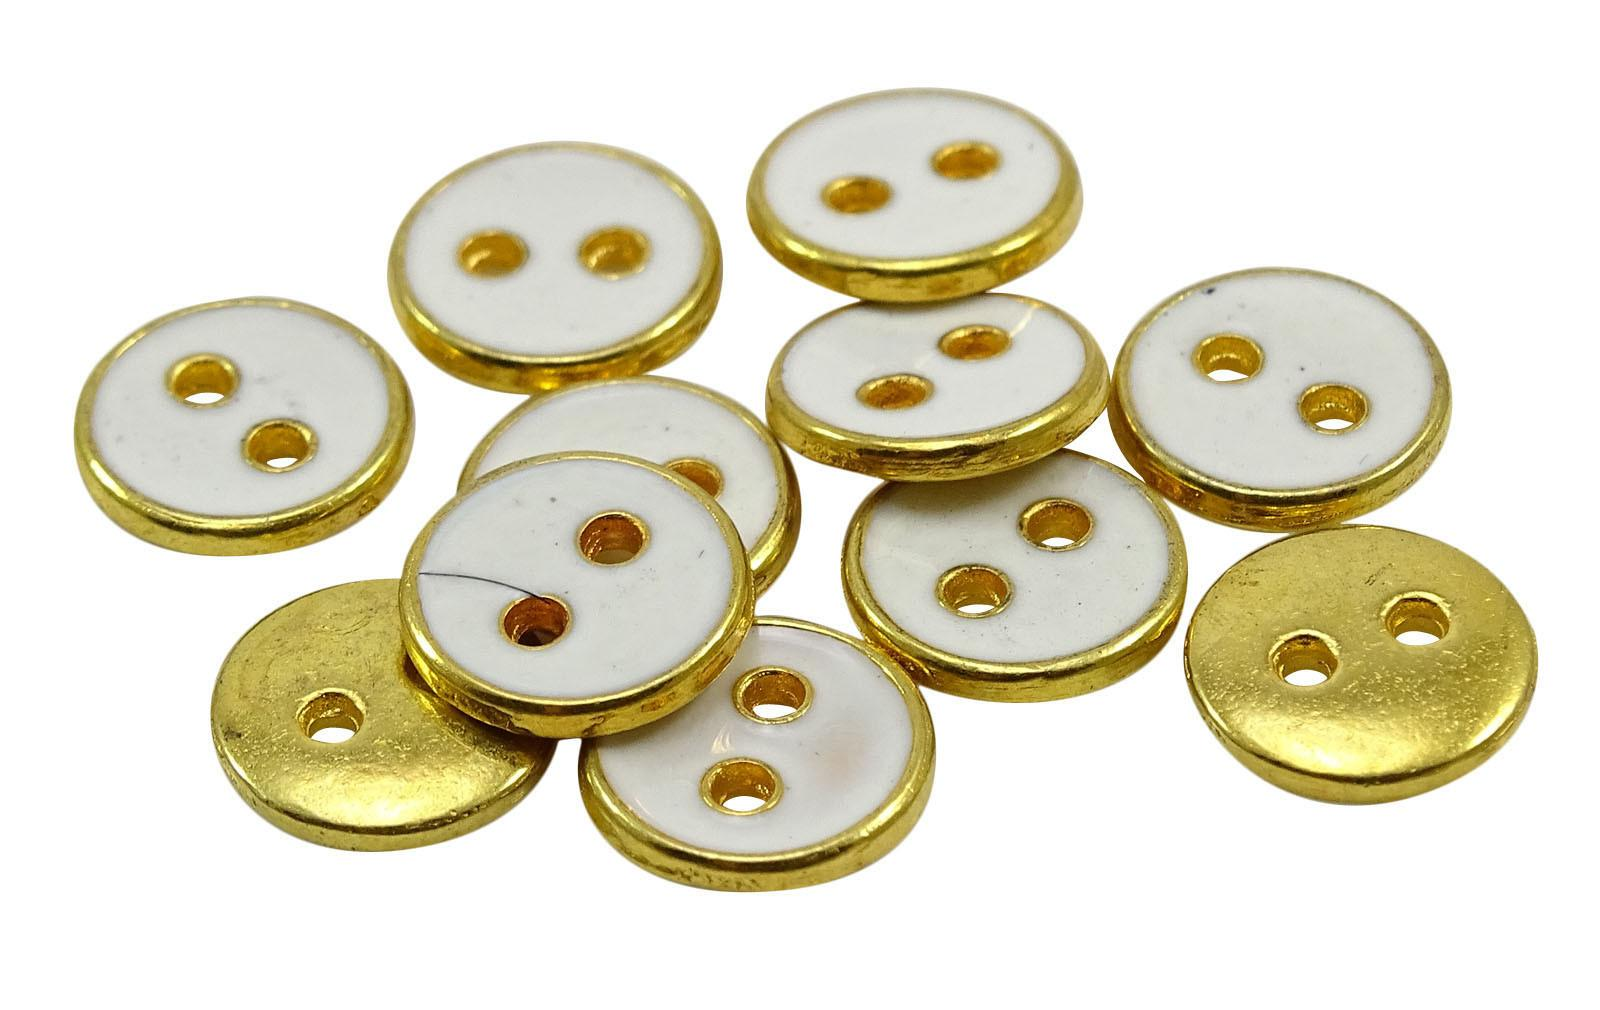 Gold Buttons Crafting Accessories Diy Sewing Wholesale